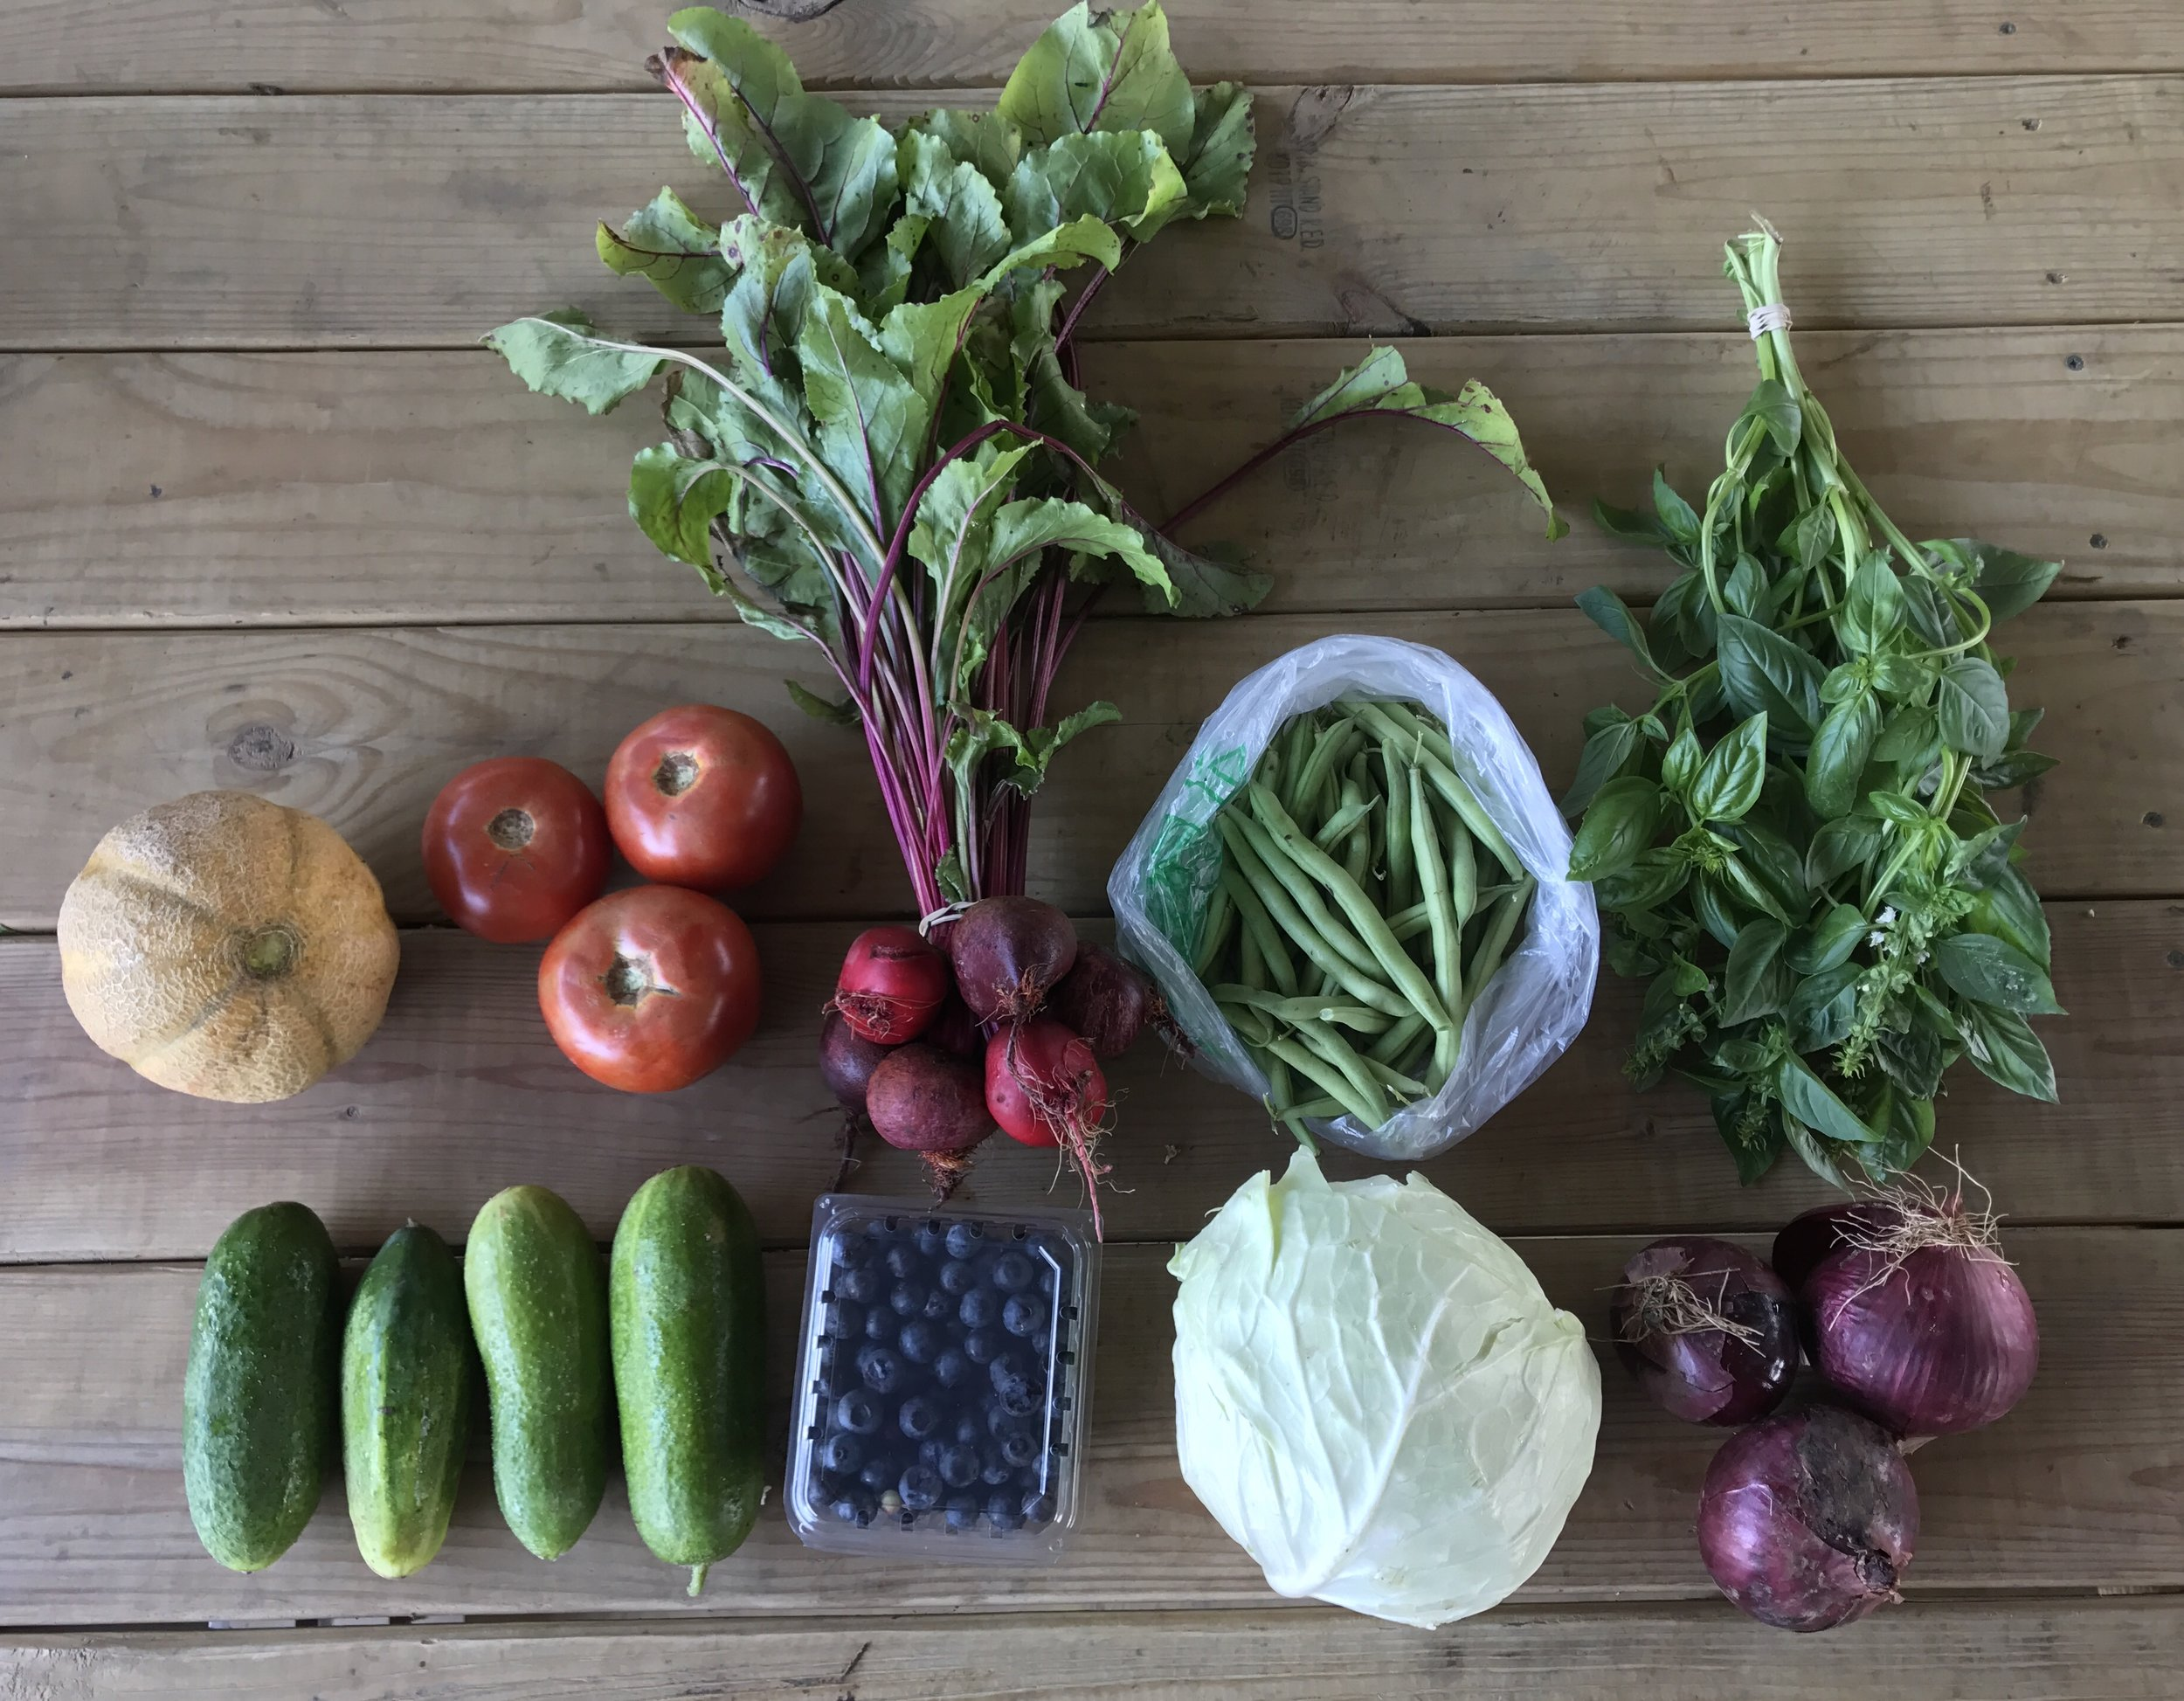 Top Row: Cantaloupe, Tomatoes, Beets, Snap Beans, and Italian Basil.  Bottom Row: Cucumbers, Blueberries, Cabbage, and Onions